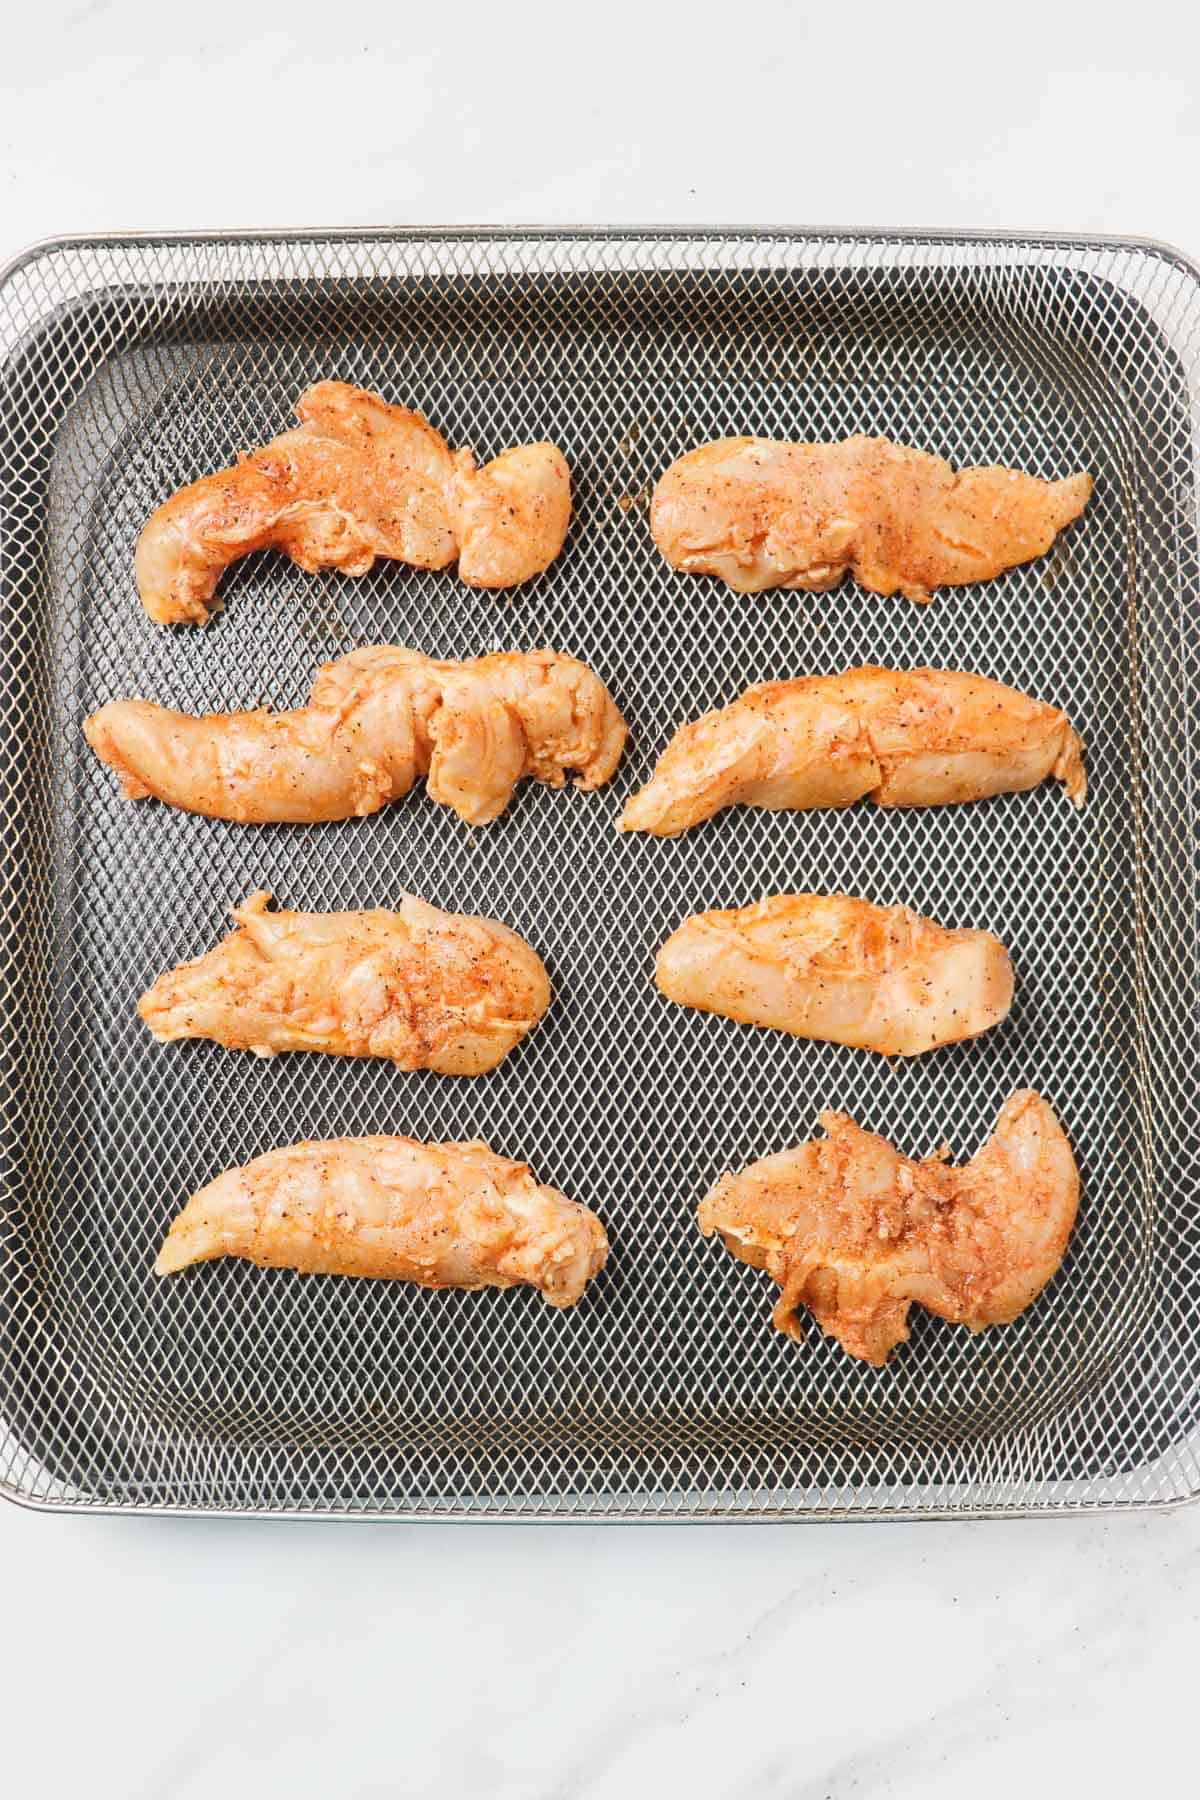 raw chicken tenders in air fryer basket